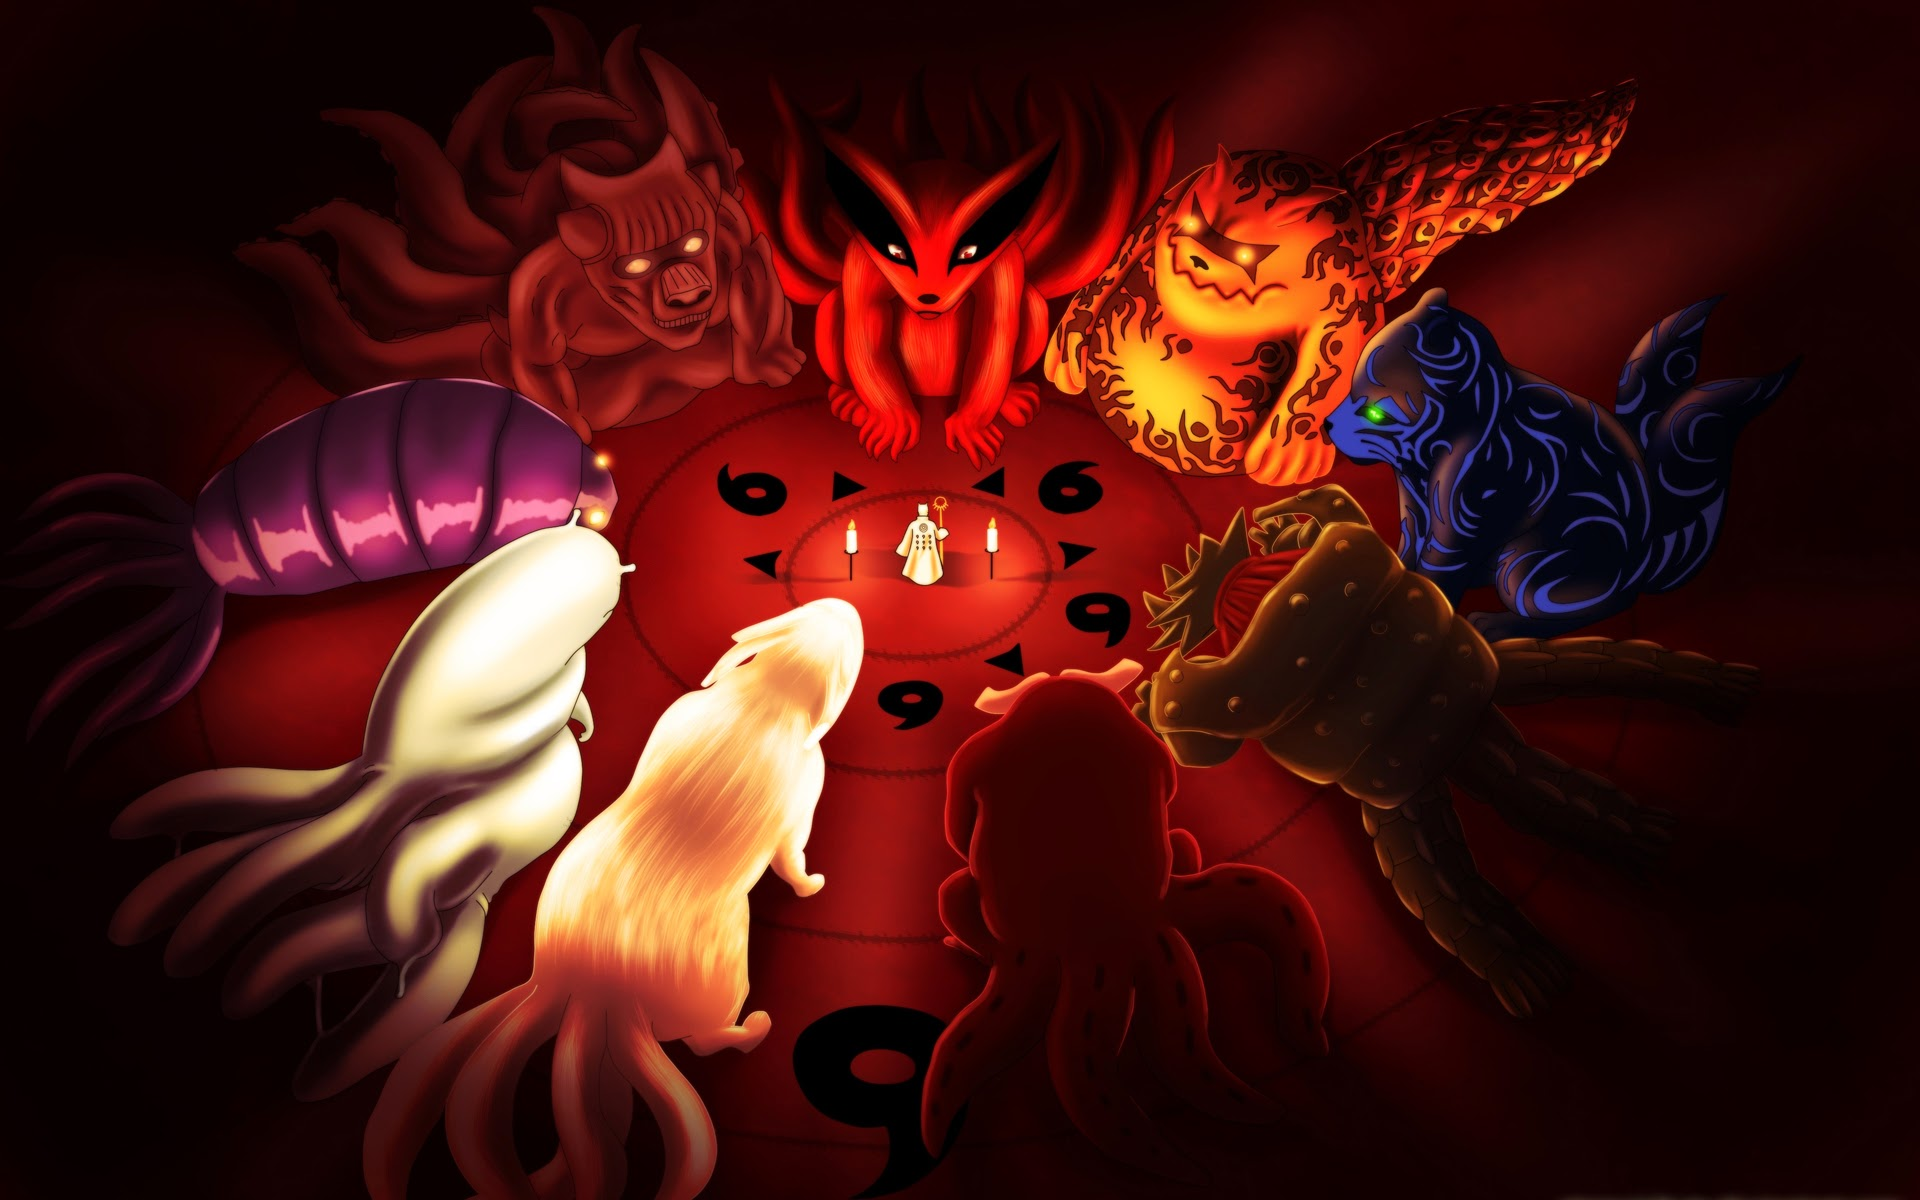 Best 41 Tailed Beasts Wallpaper on HipWallpaper Tailed Beasts 1920x1200